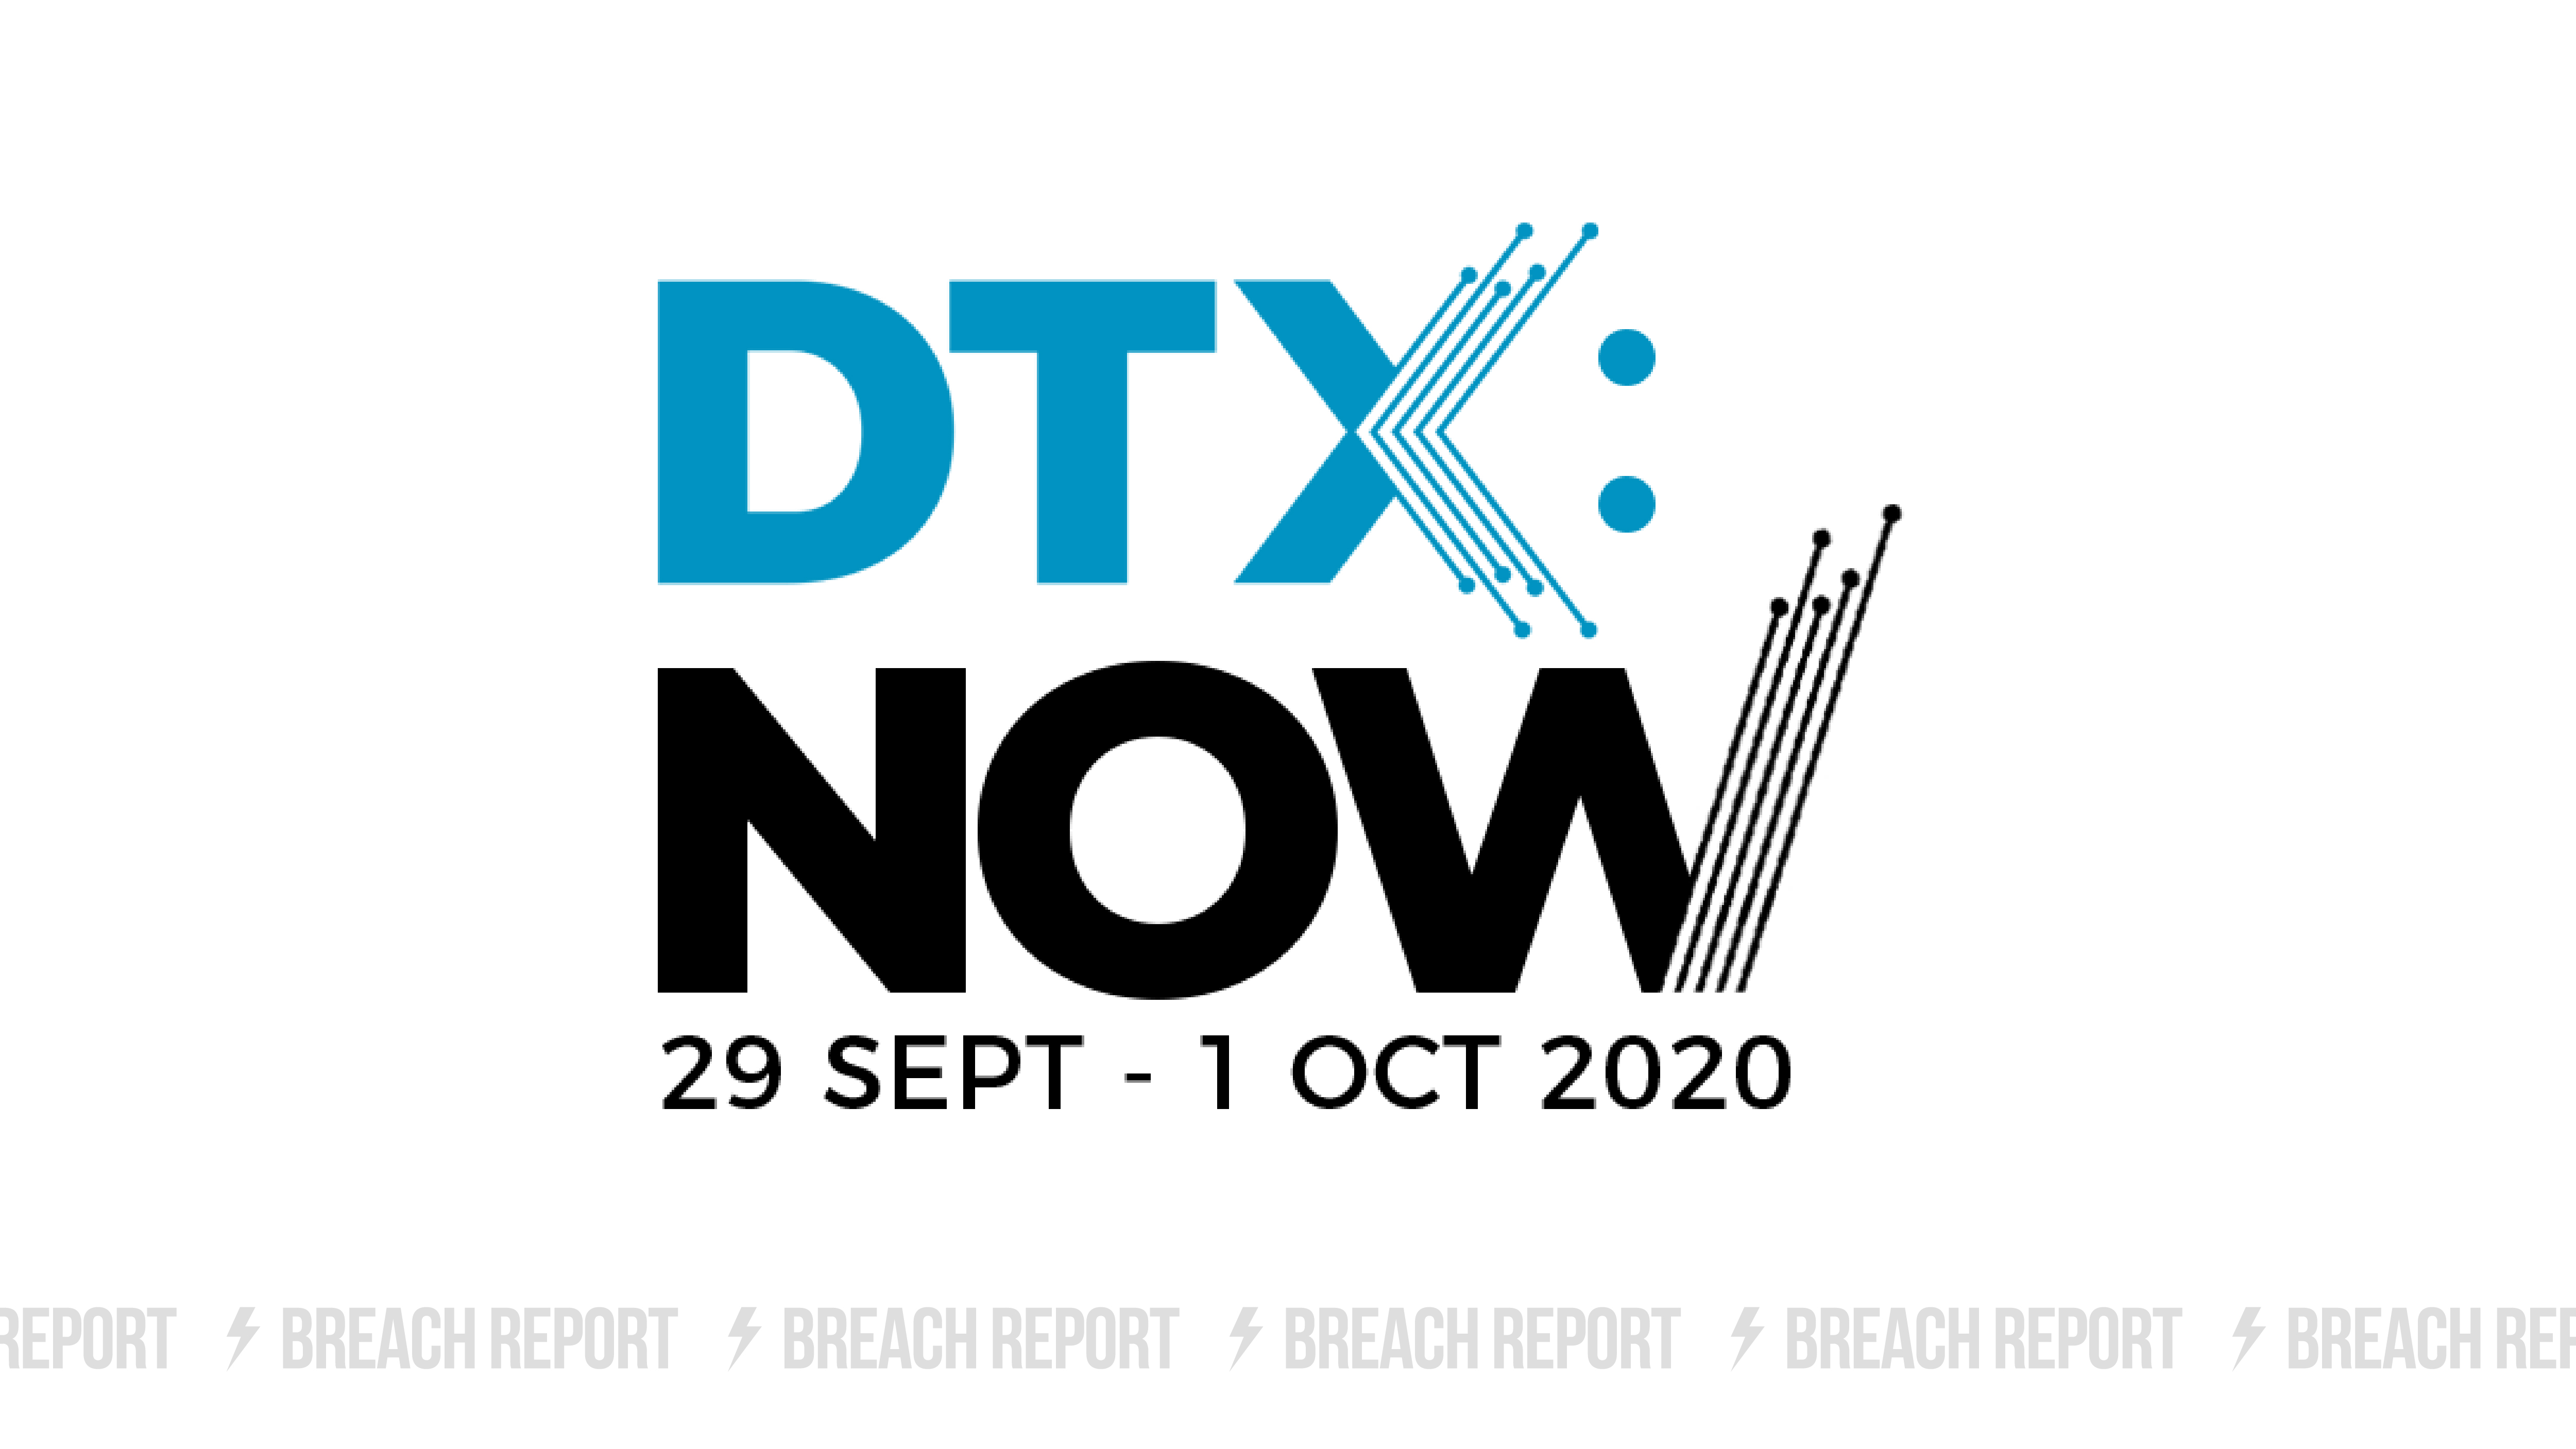 digital conference breach report Digital Transformation EXPO cyber security